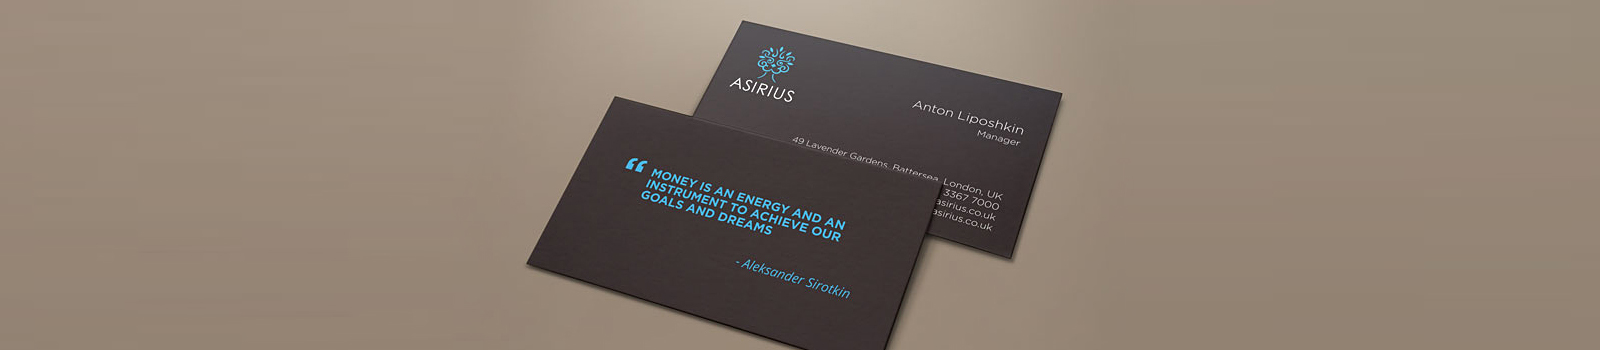 Project / Logos and styles / Asirius company corporate style